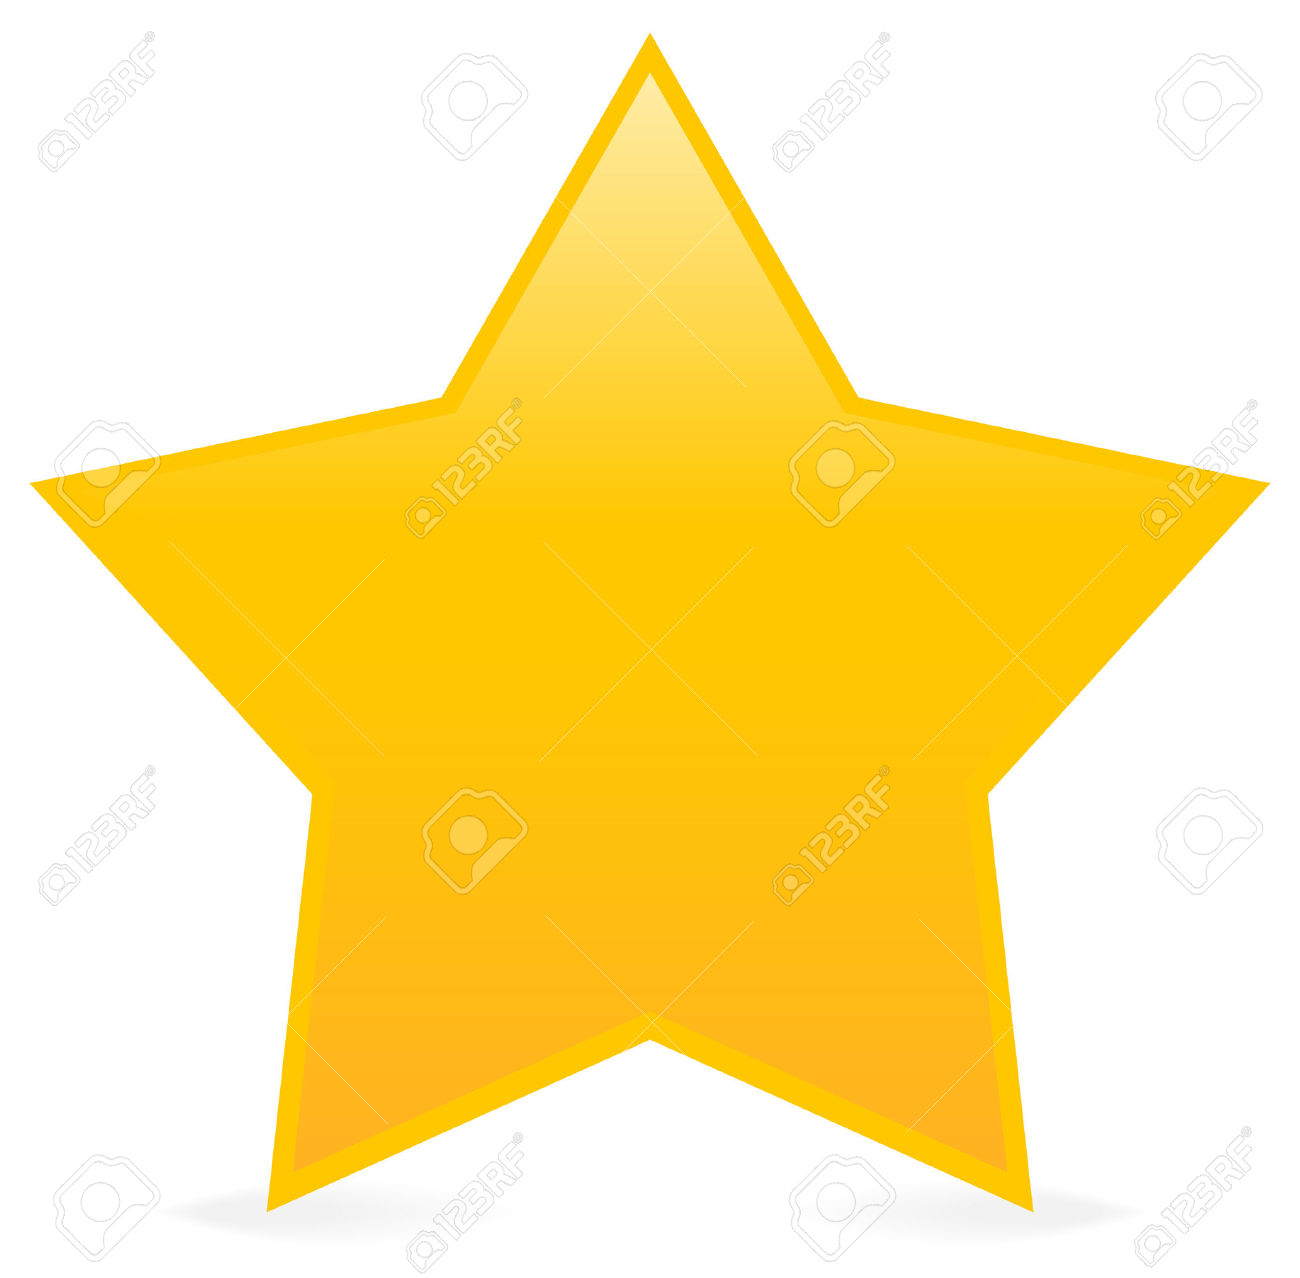 Vector - Yellow Star Isolated .-Vector - Yellow star isolated .-6